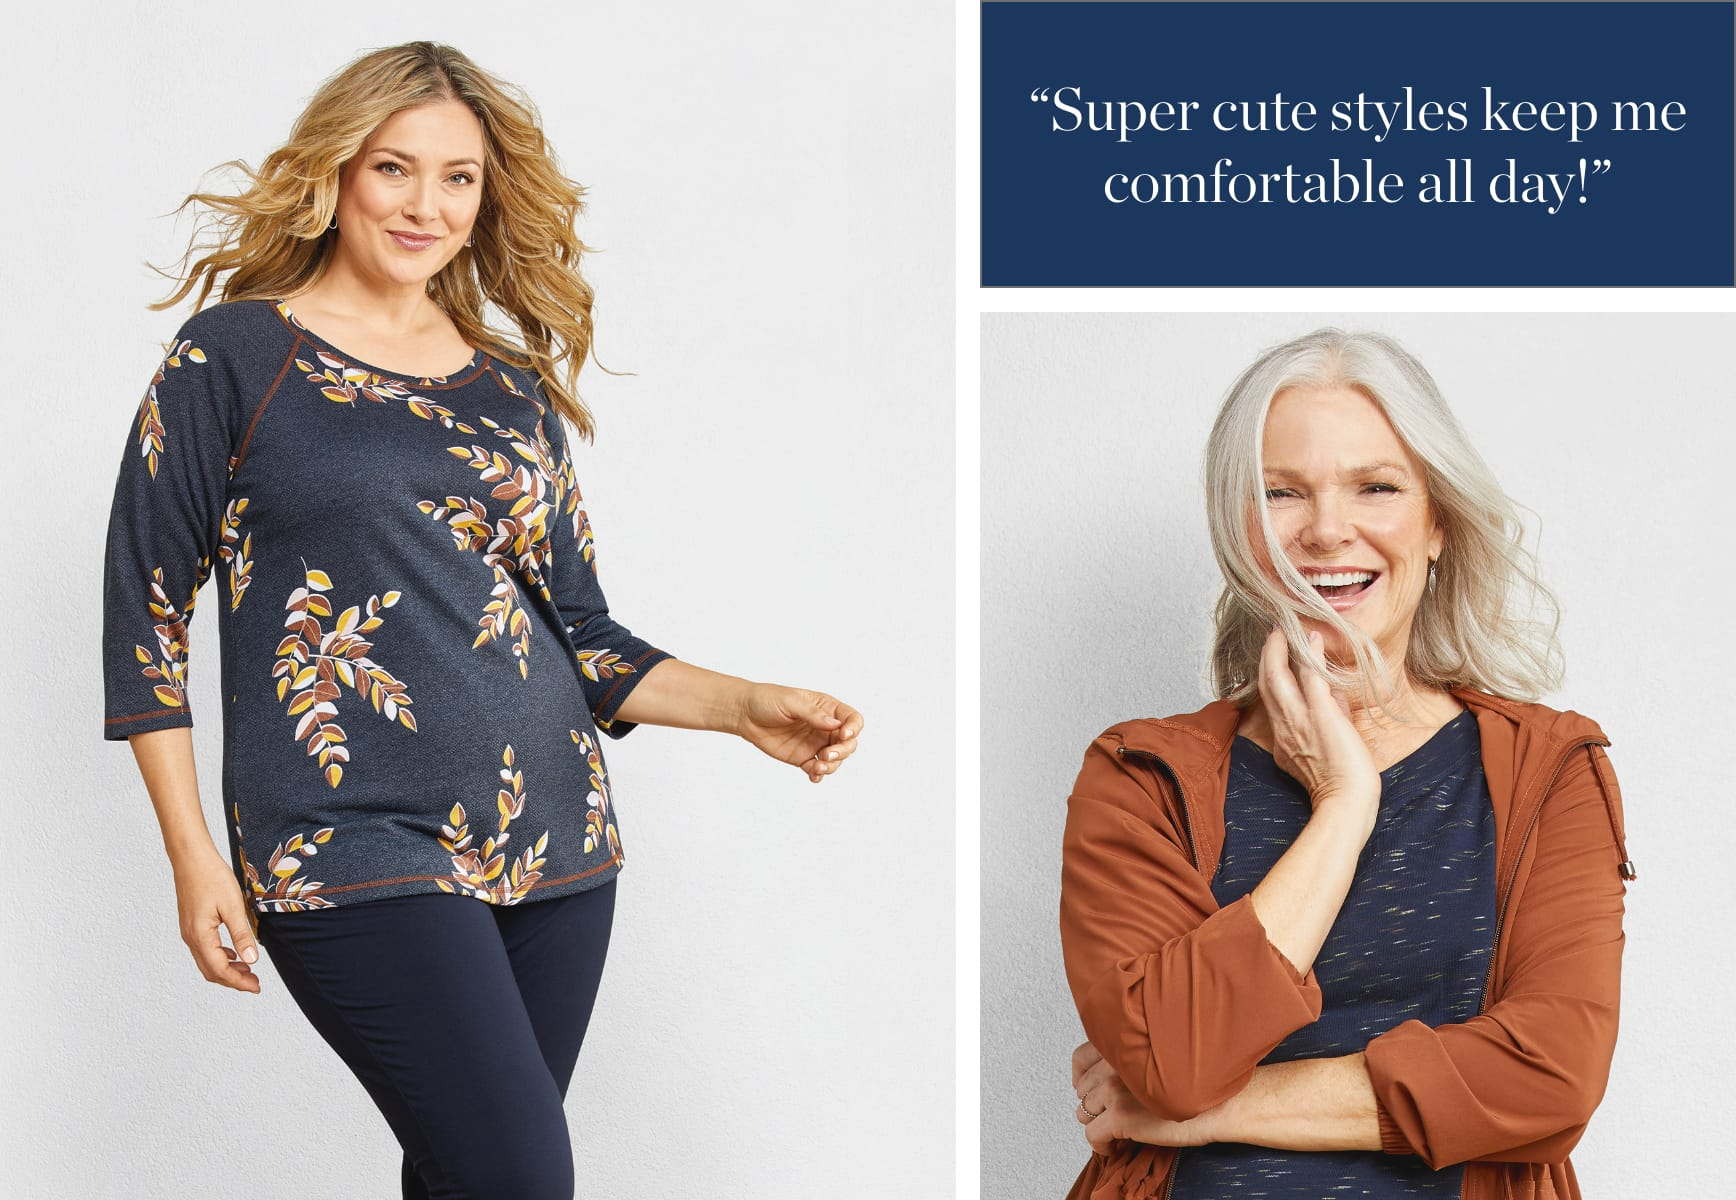 Super Cute Styles Keep Me Comfortable All Day!